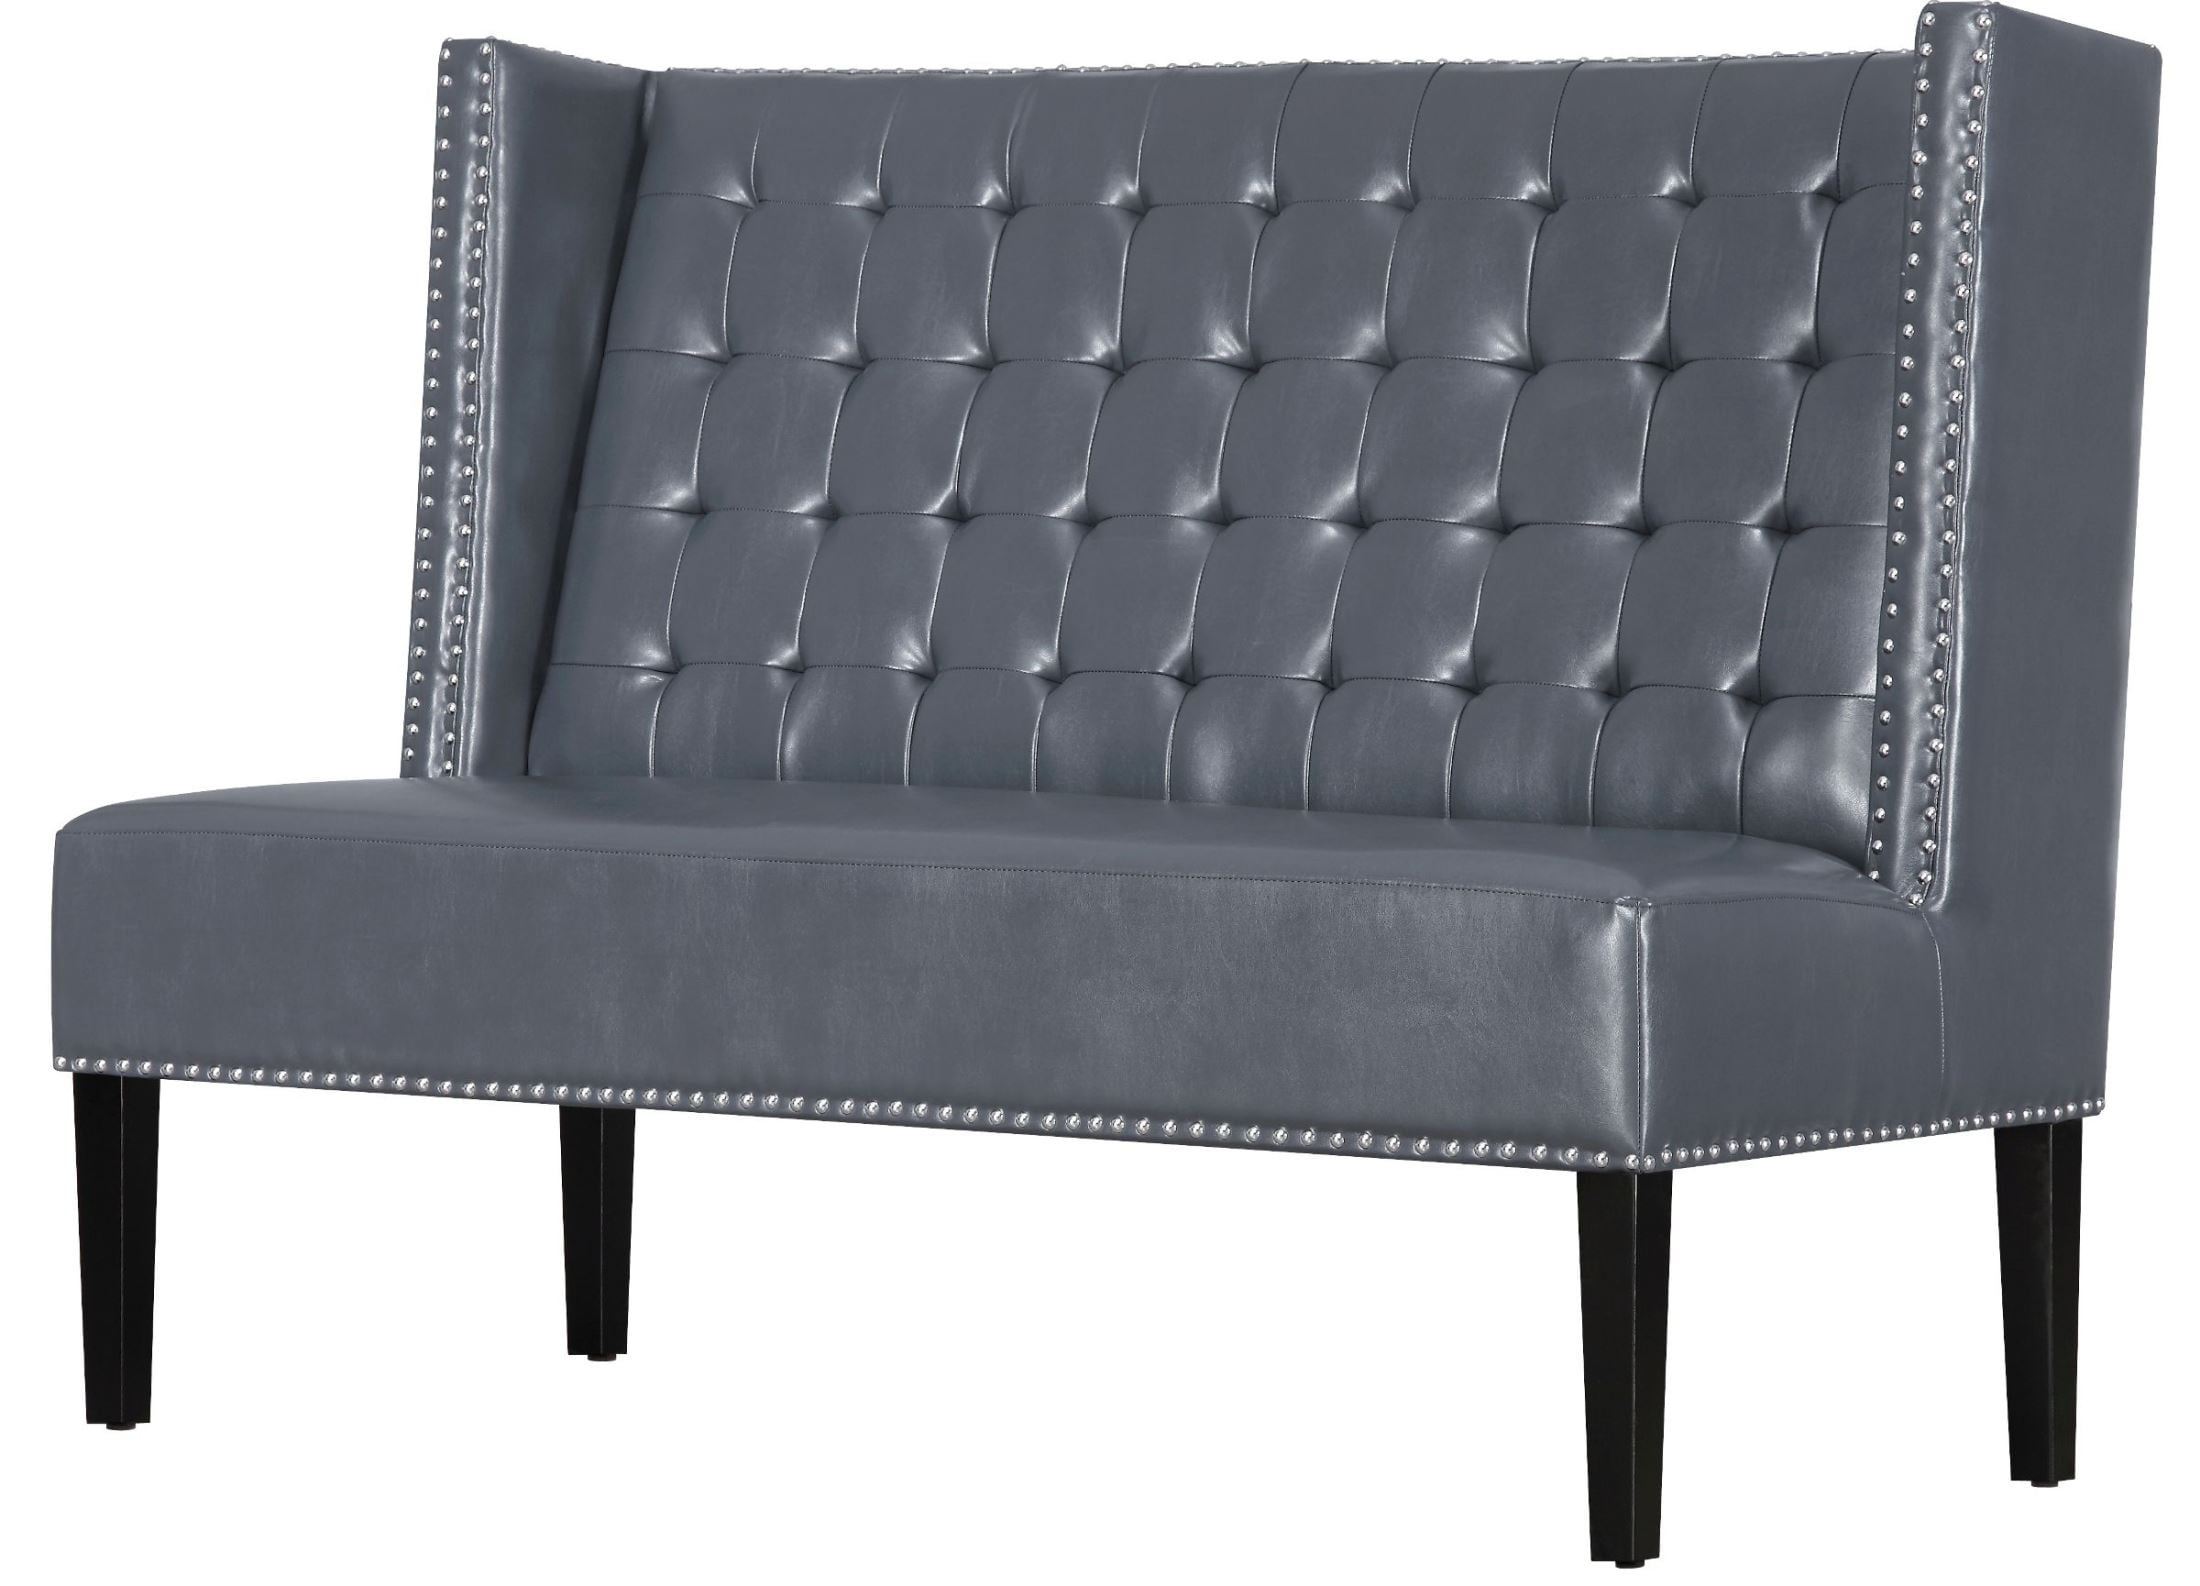 Halifax Gray Leather Banquette Bench From Tov 63116 Gray Coleman Furniture